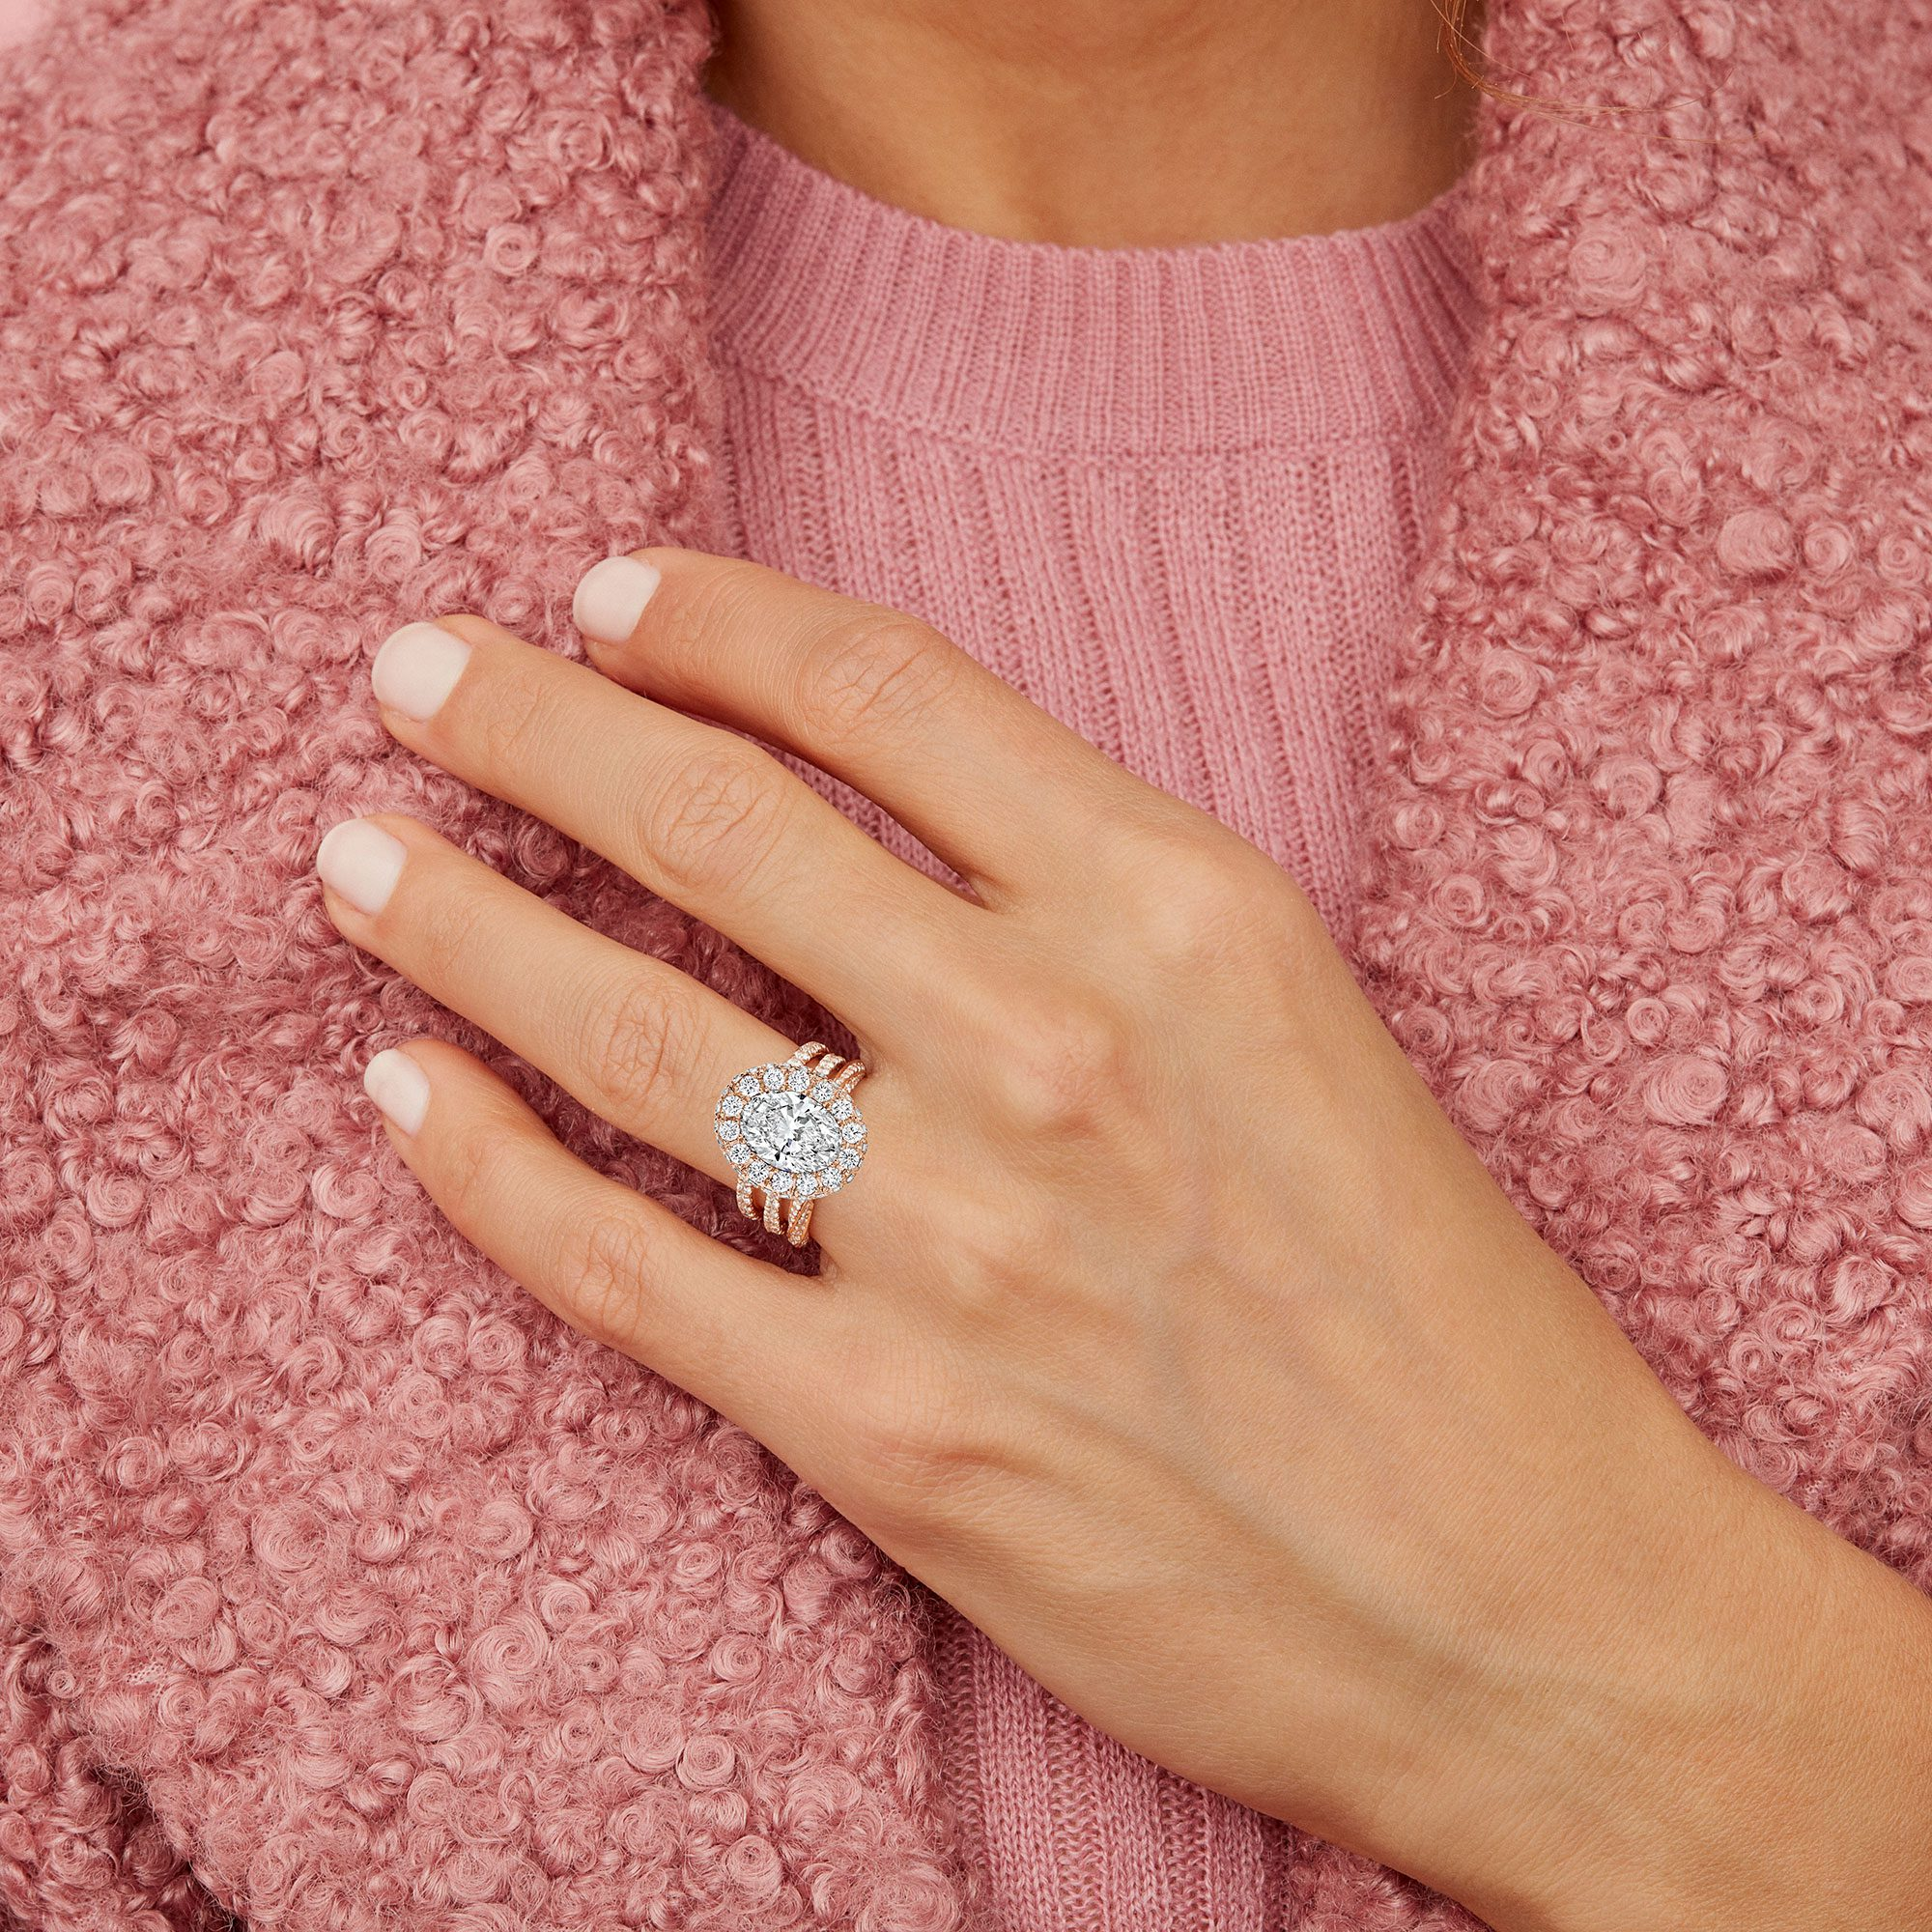 Eloise Oval Lab Grown Diamond Ring on Hand Model by Oui